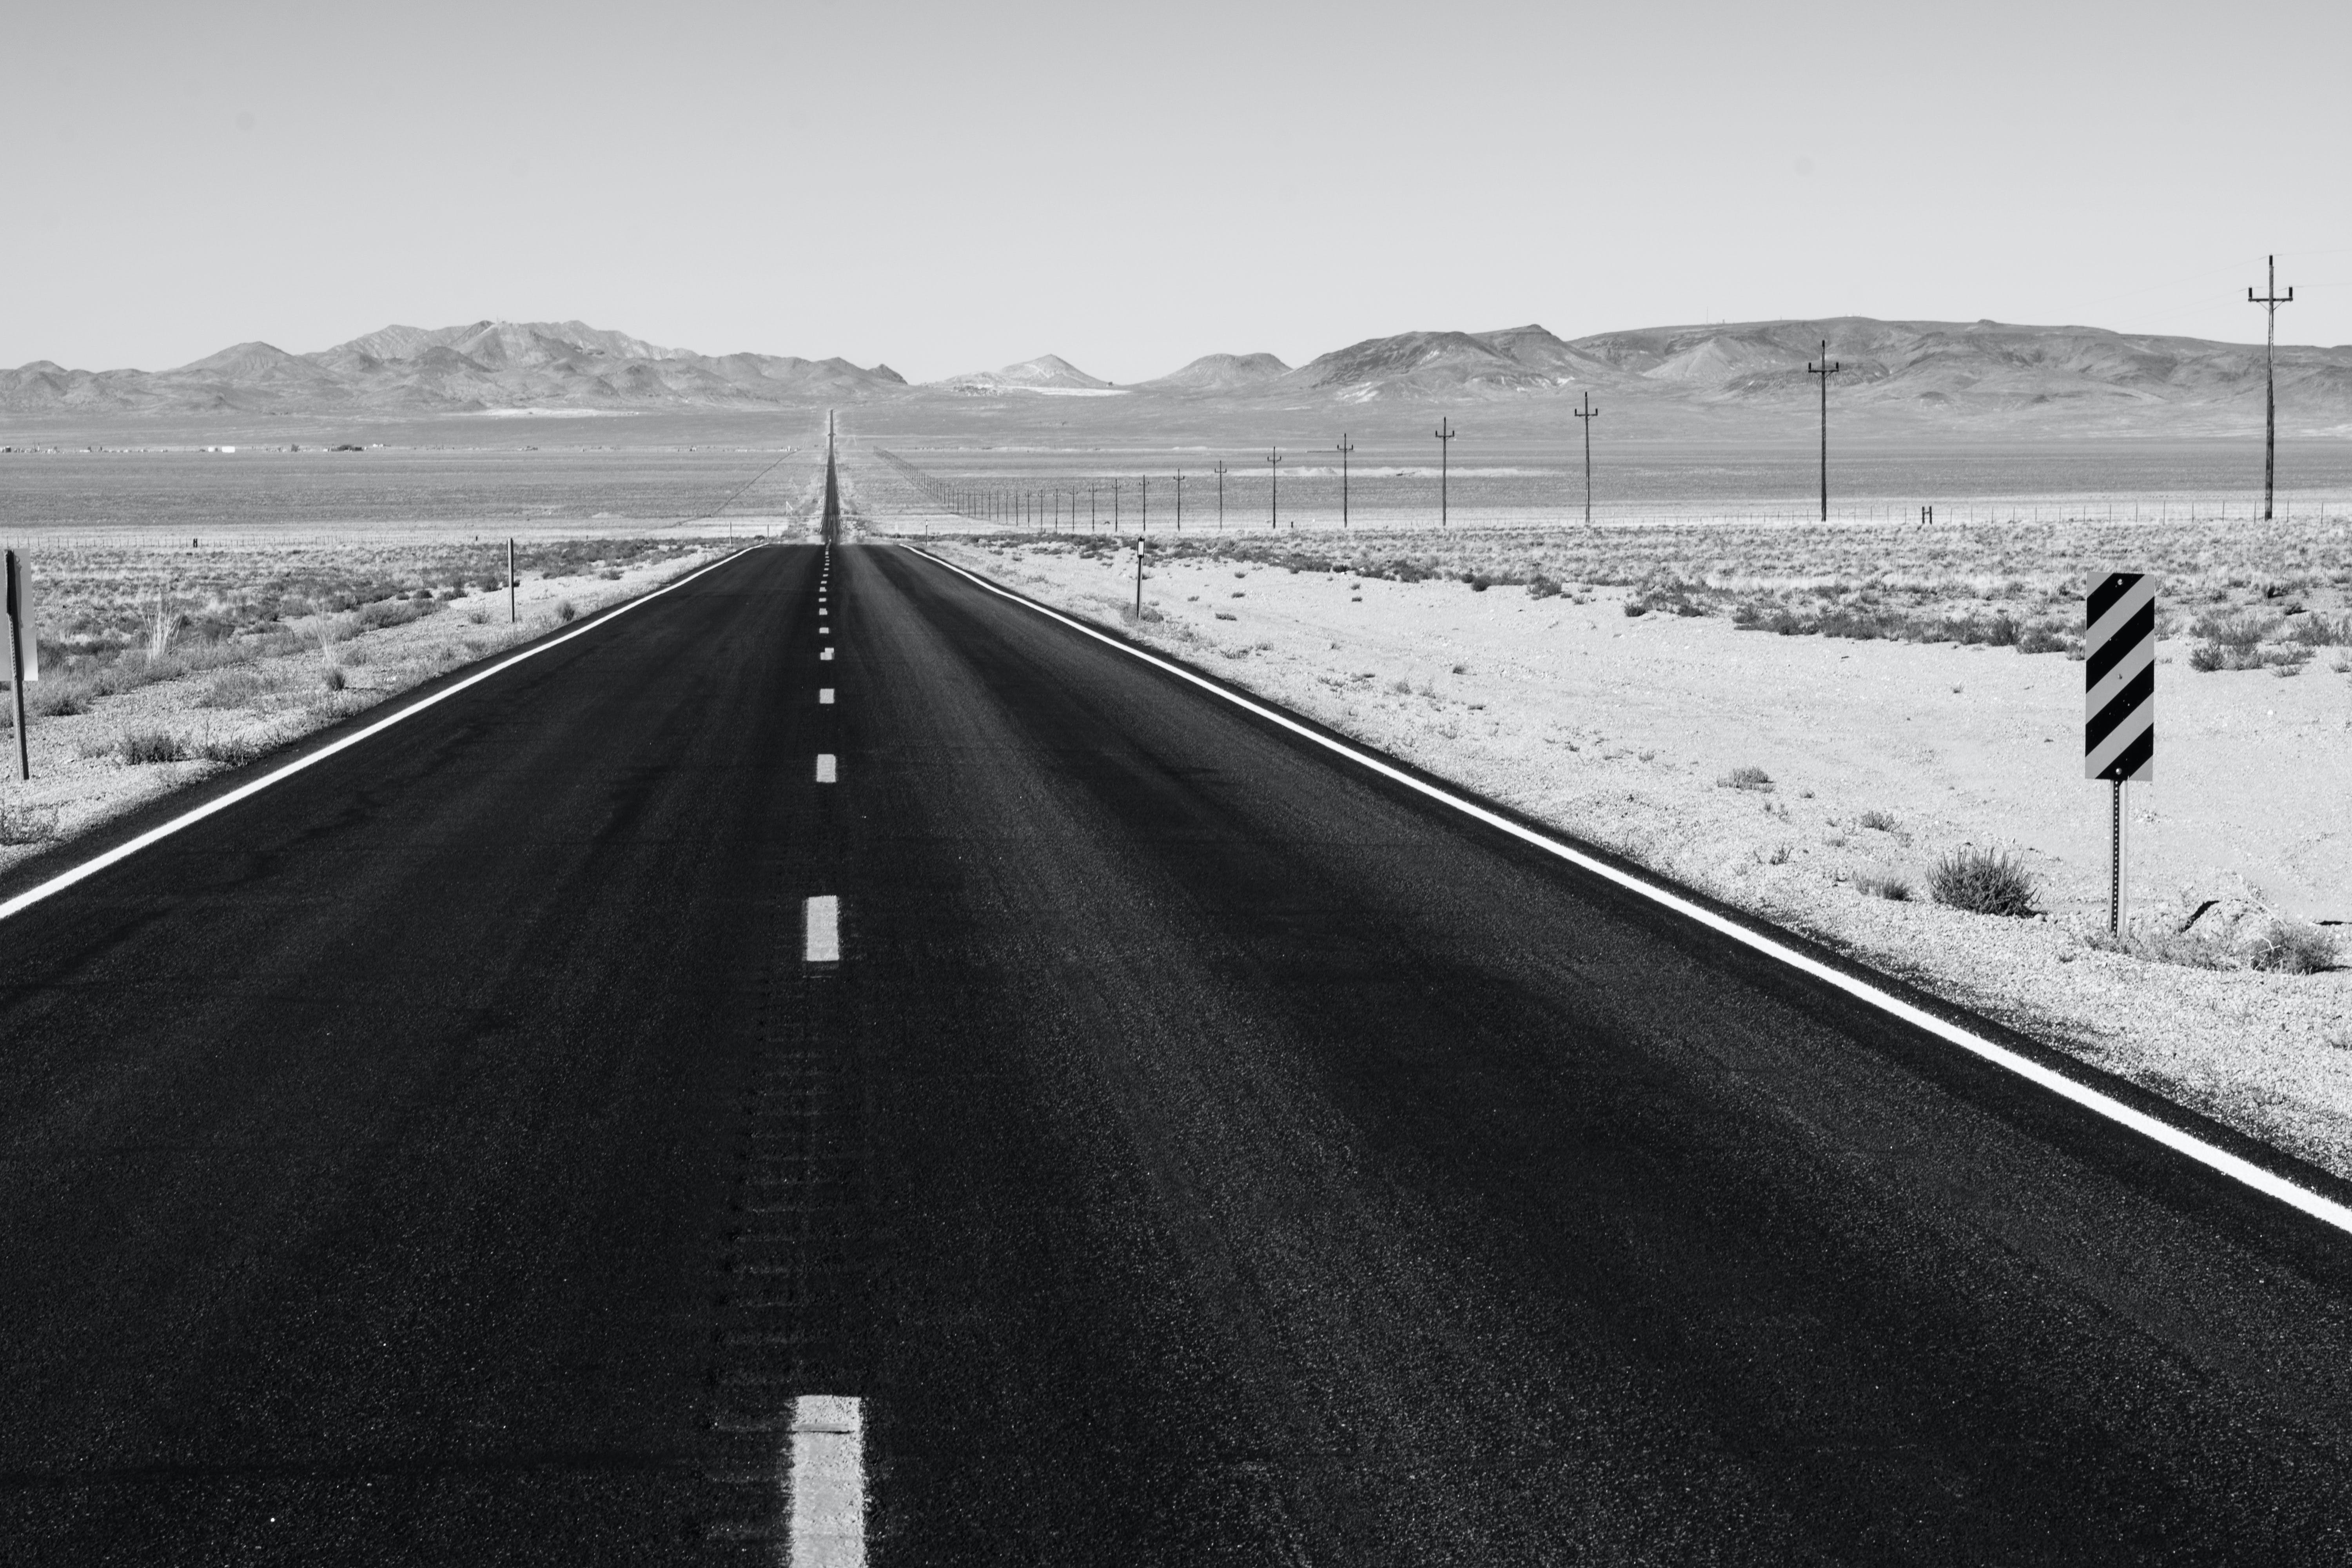 Grayscale Photo of Road on Desert